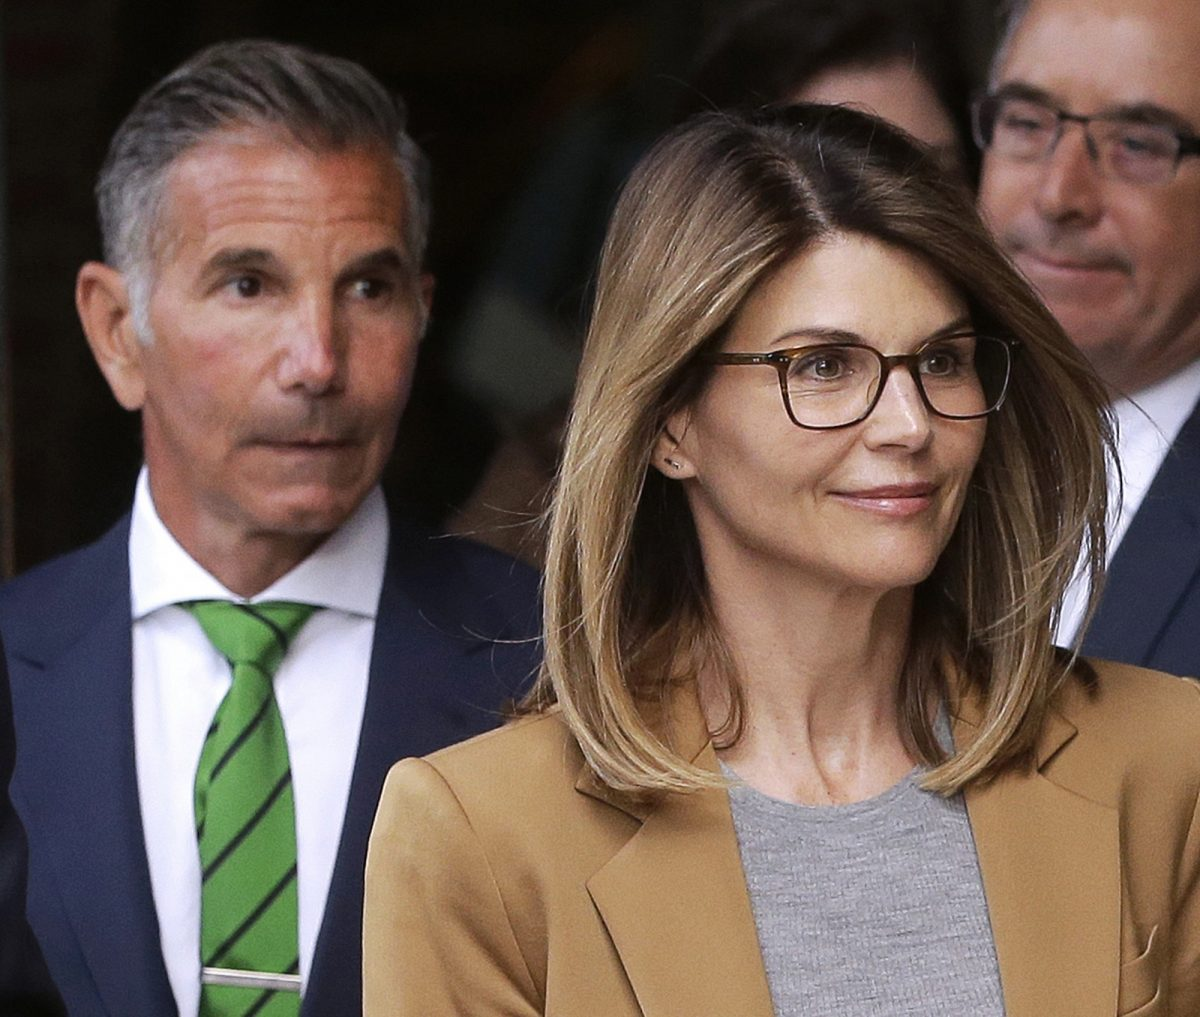 Lori Loughlin, Other Parents Accused of Withholding Evidence in College Scam Case